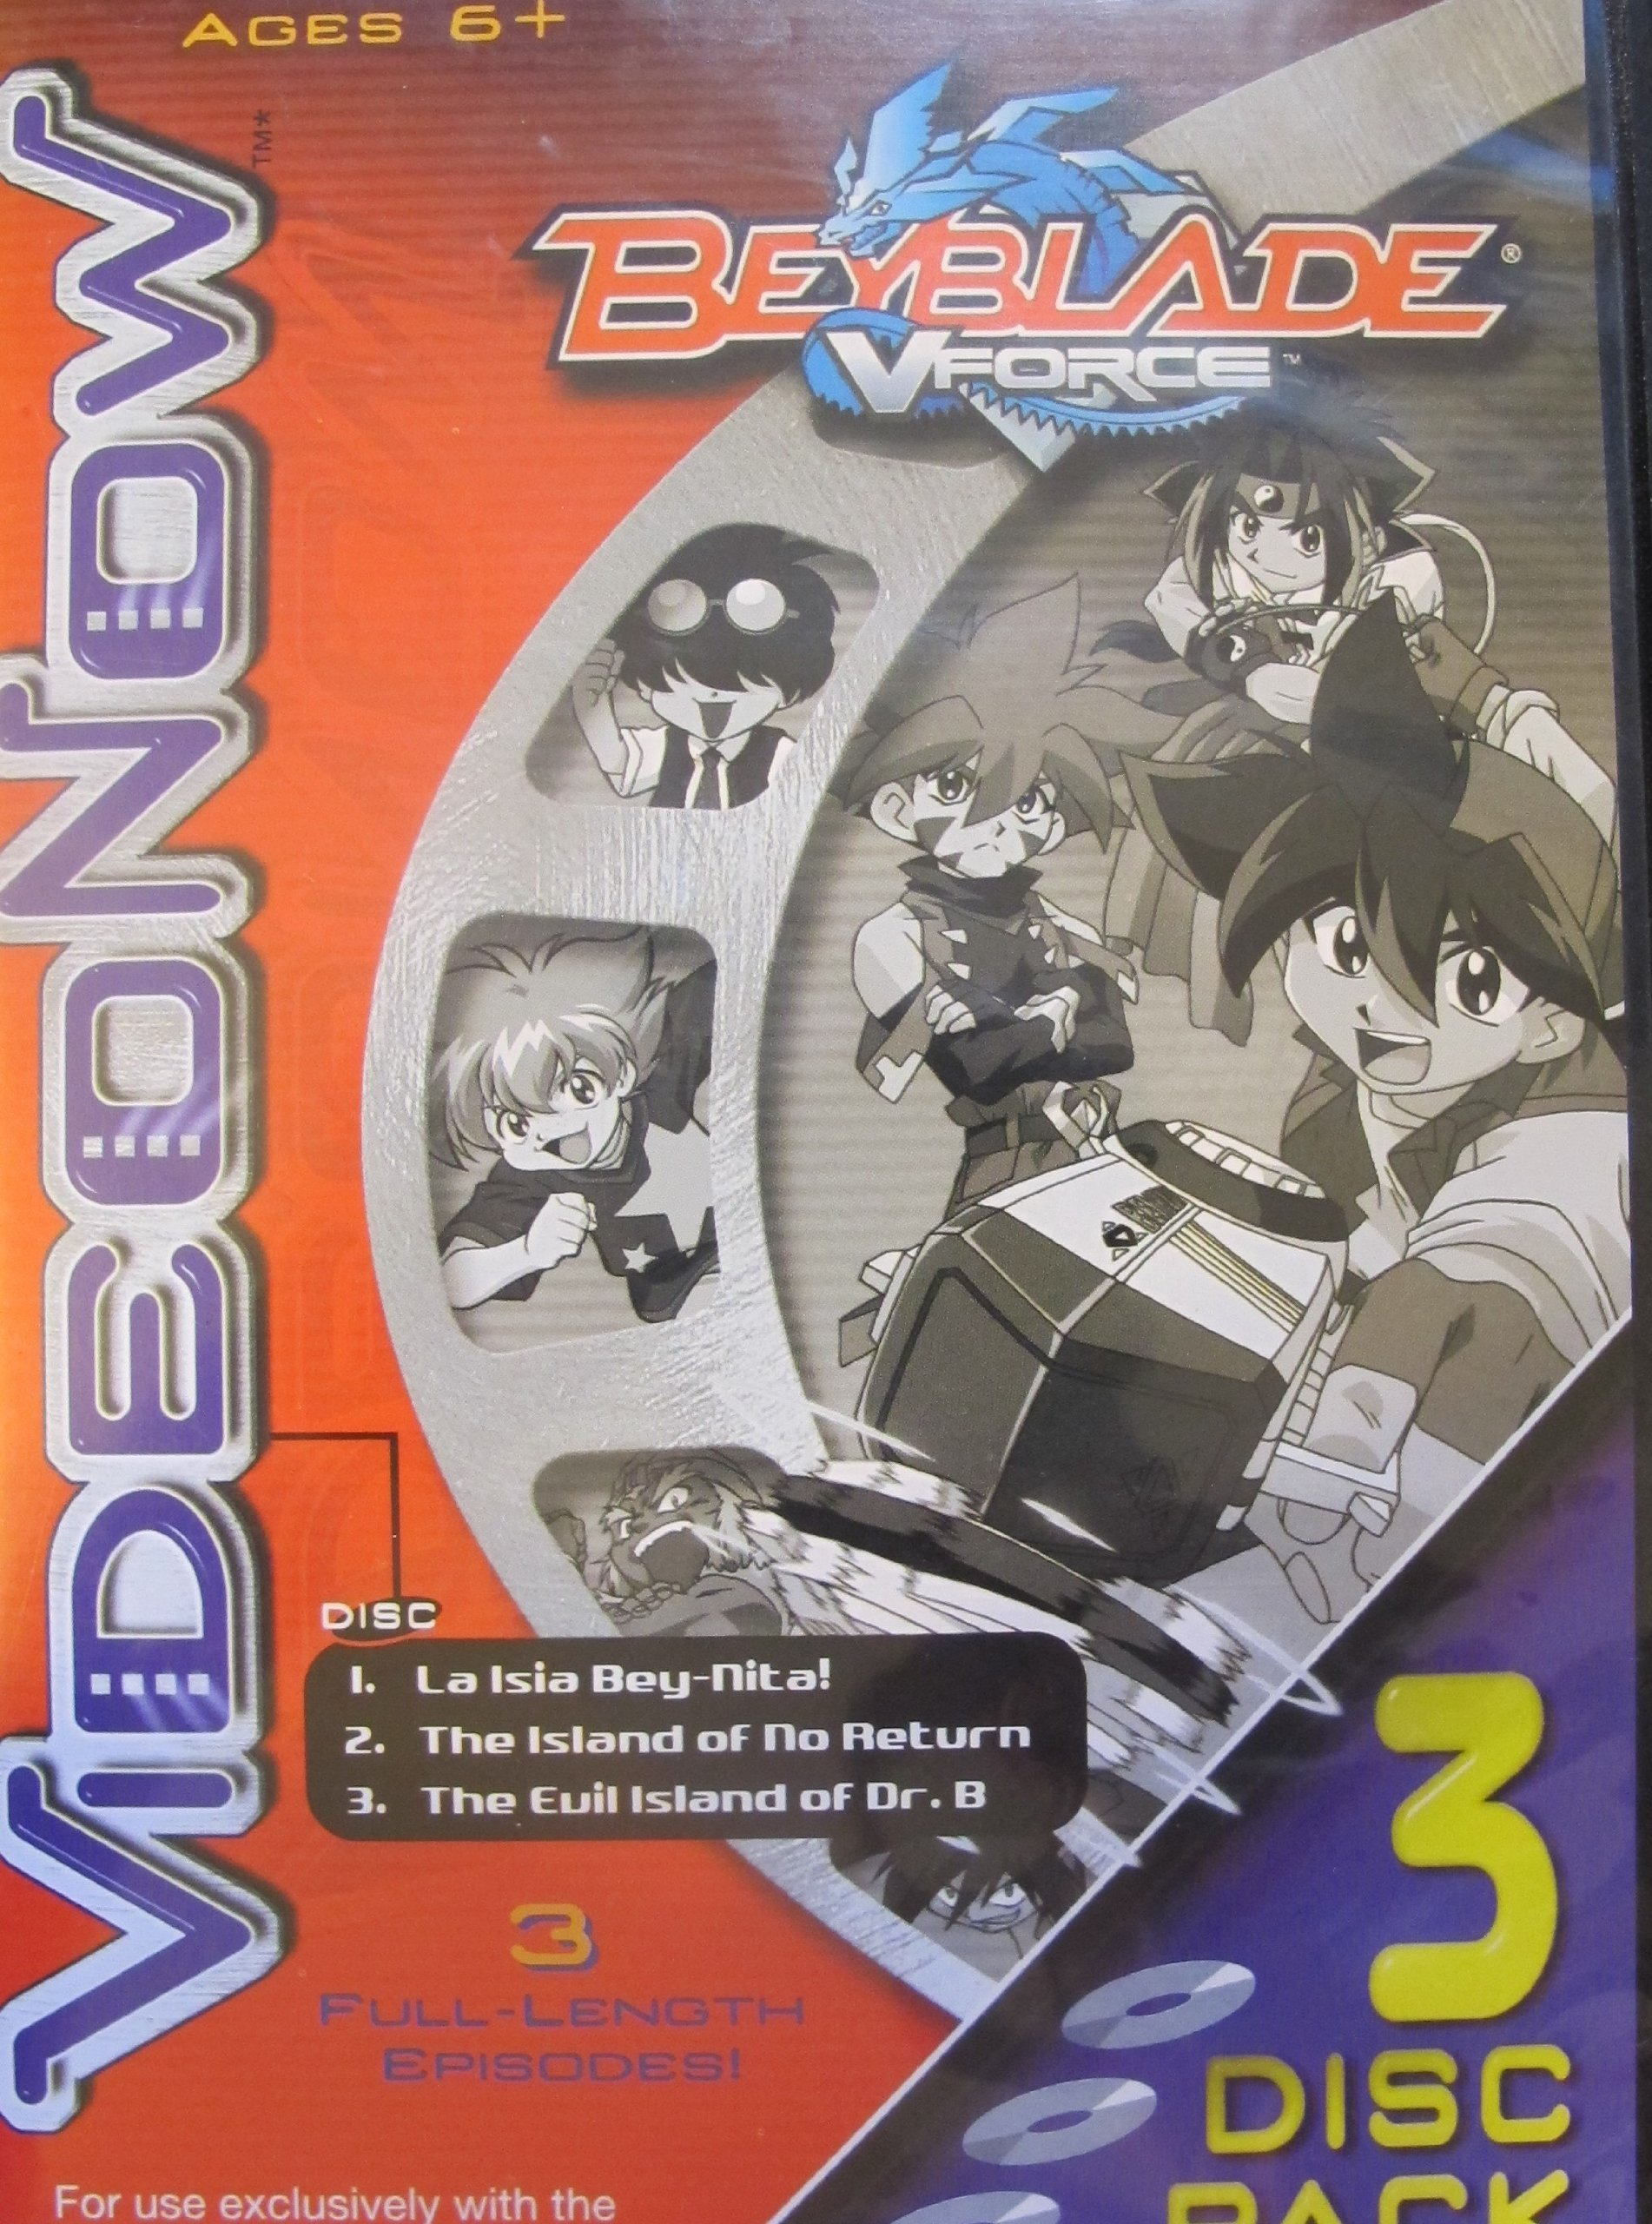 VideoNow BeyBlade VForce: La Isia Bey-nite, The Island of No Return and The Evil Island of Dr. B.